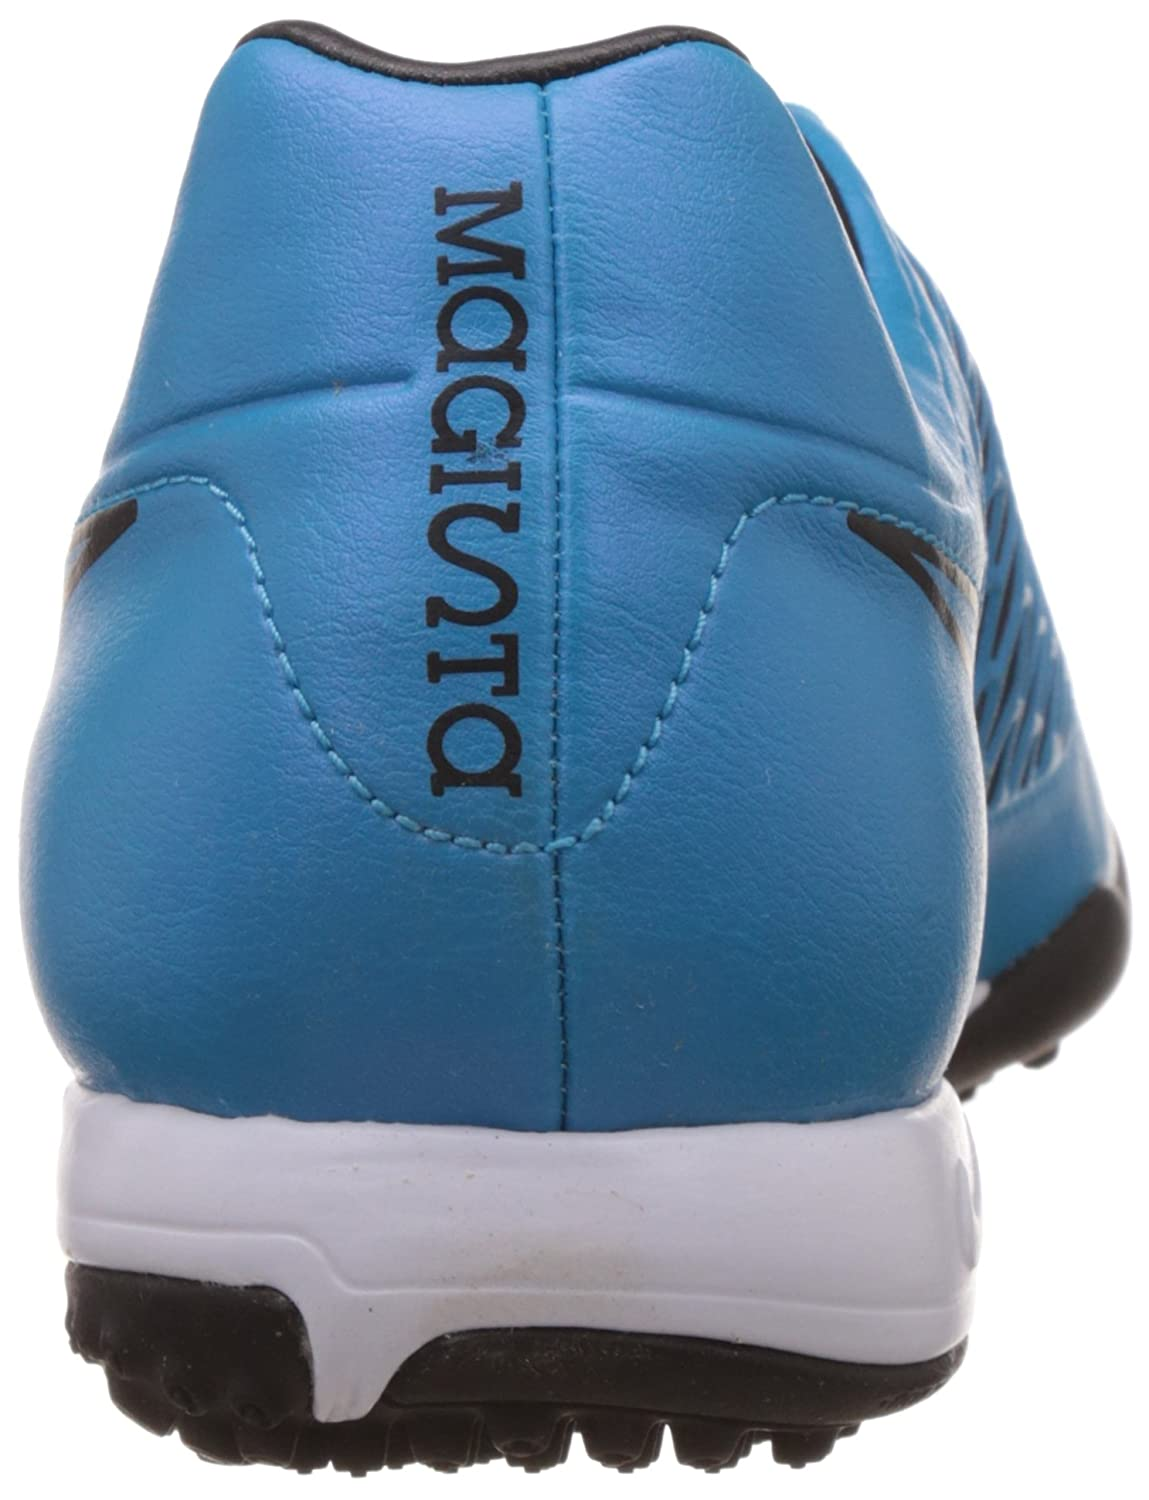 timeless design 26dbc c9566 Midsole is made with a synthetic top cloth sockliner that supports the  foot, and a die-cut EVA sockliner base provides low-profile cushioning